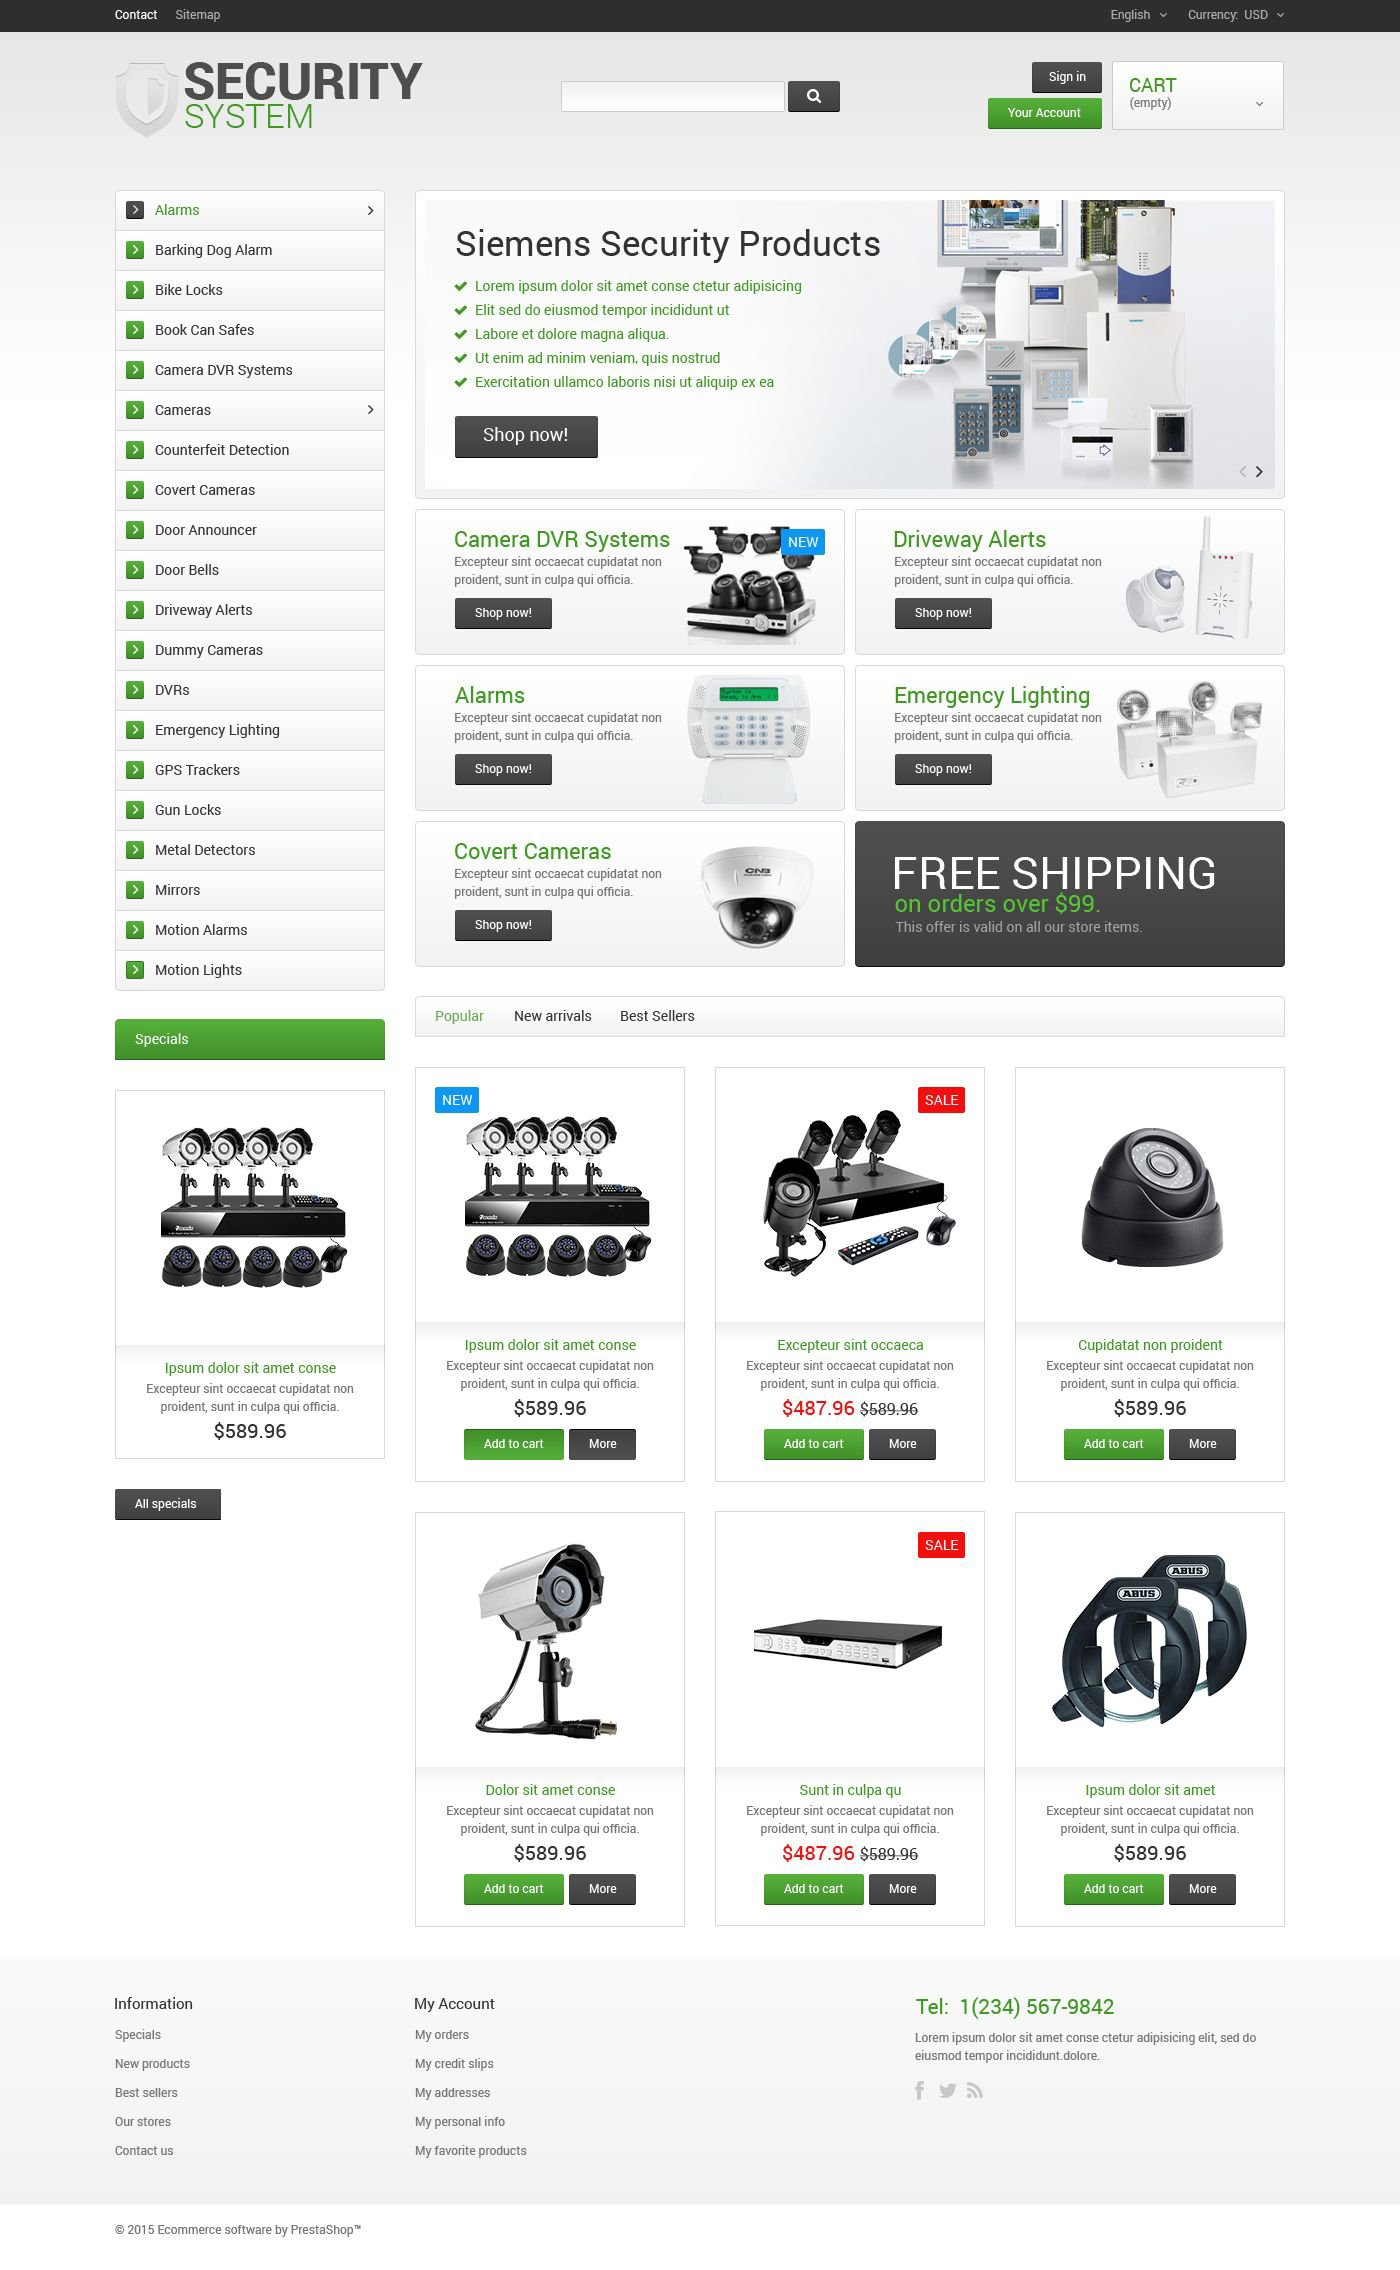 The Security System PrestaShop Design 53441, one of the best PrestaShop themes of its kind (security, most popular), also known as security system PrestaShop template, services company PrestaShop template, safe PrestaShop template, safety PrestaShop template, safeguard PrestaShop template, protection system PrestaShop template, information PrestaShop template, data PrestaShop template, service solution PrestaShop template, business PrestaShop template, home PrestaShop template, secure and related with security system, services company, safe, safety, safeguard, protection system, information, data, service solution, business, home, secure, etc.